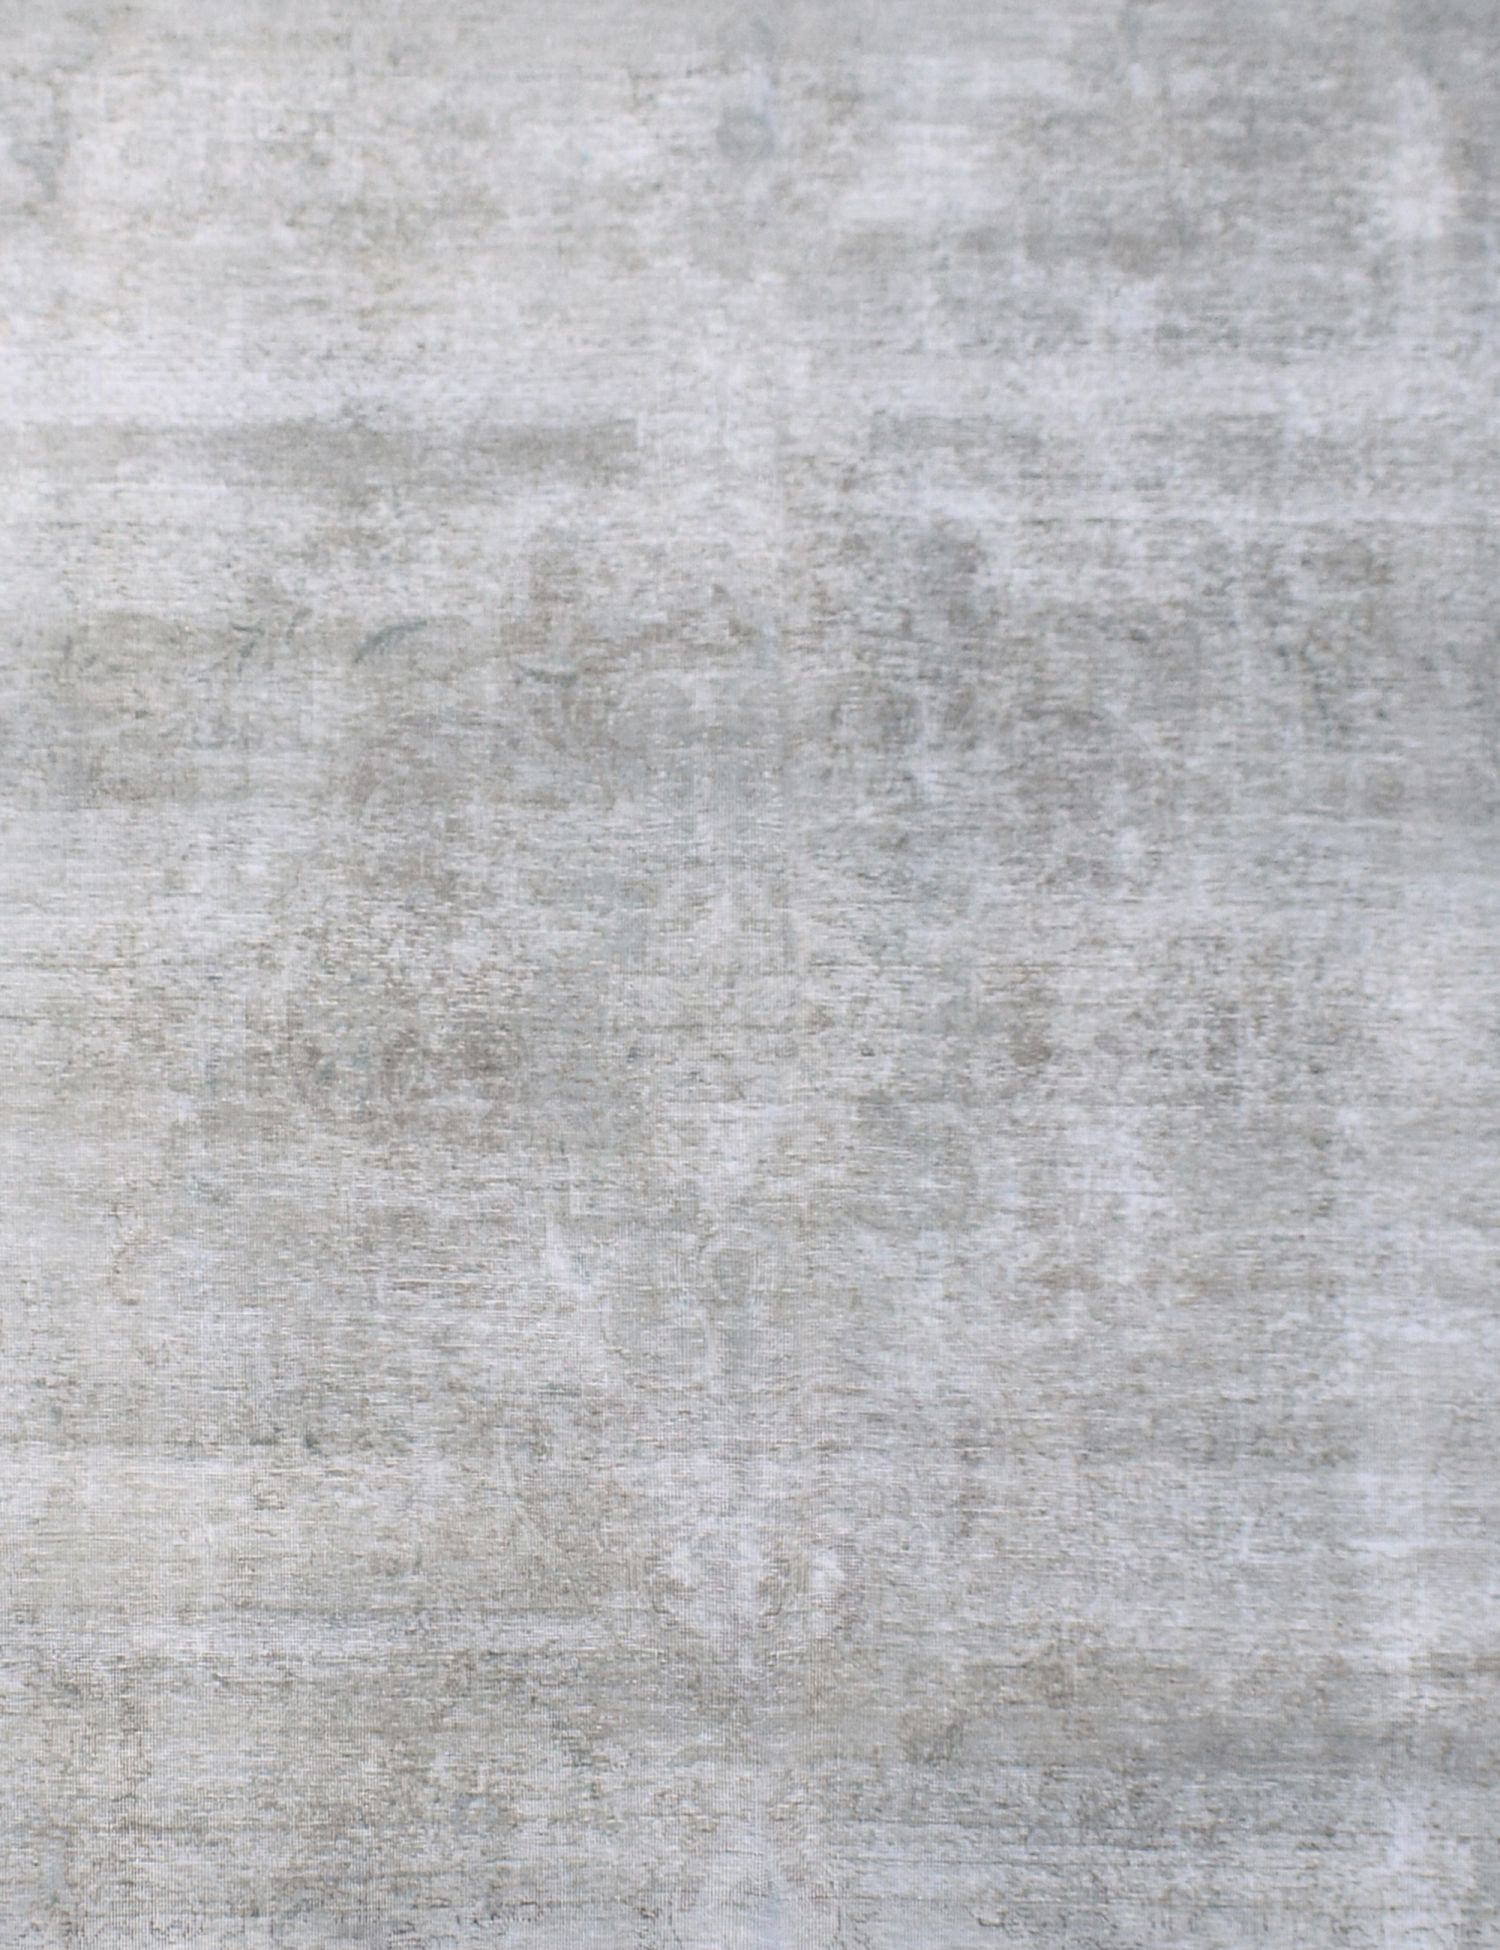 Vintage Carpet  grey <br/>392 x 289 cm